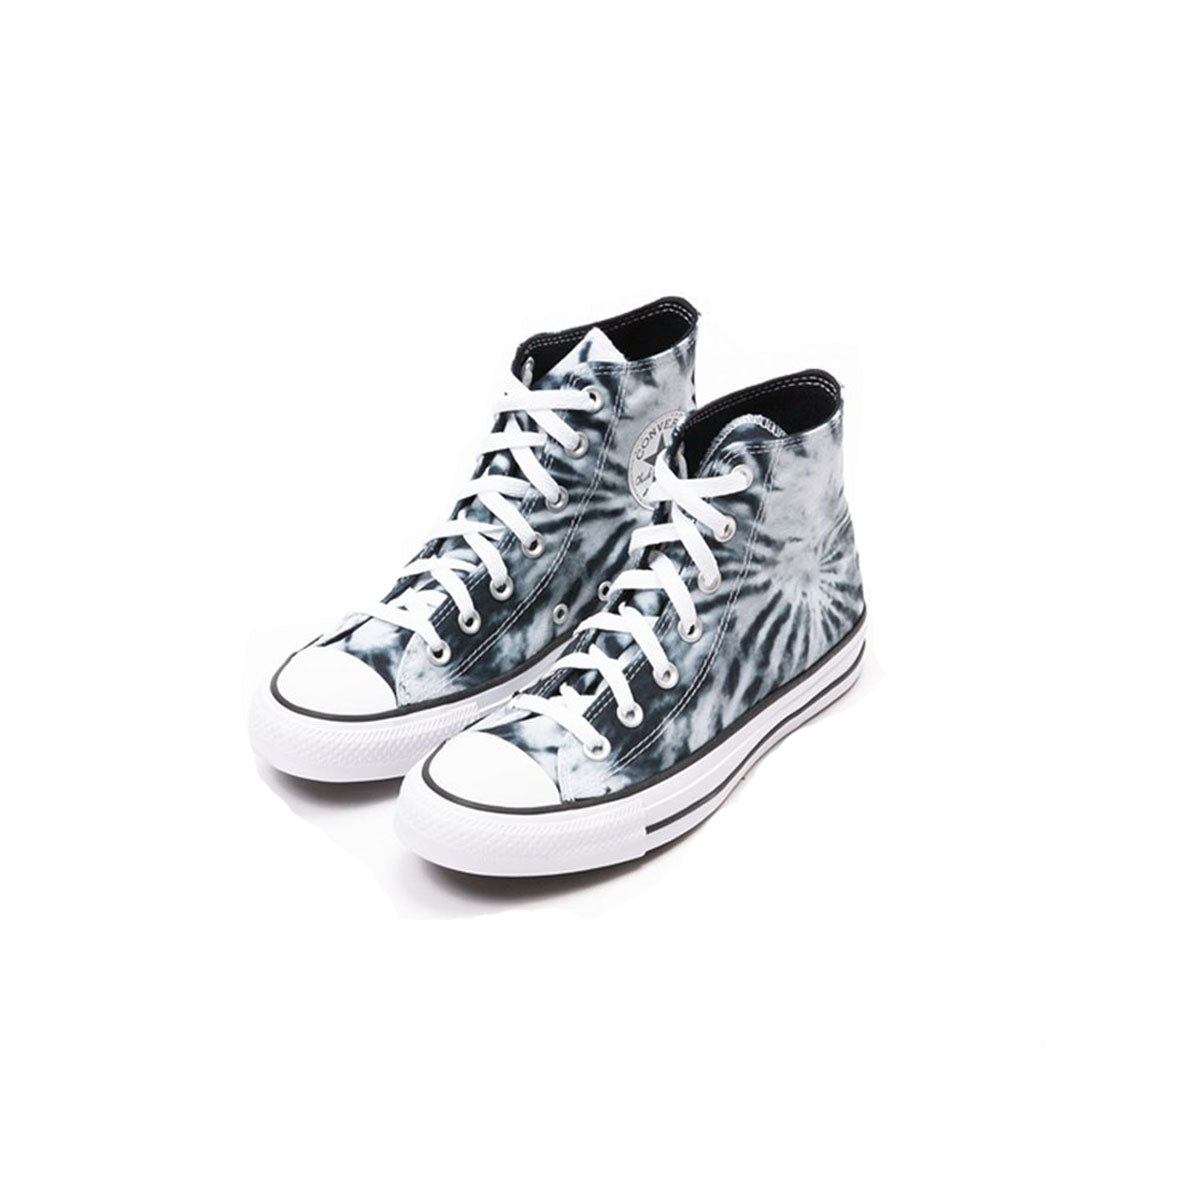 CONVERSE CHUCK TAYLOR ALL STAR TIE DYE TWISTED VACATION HI UNISEX SNEAKERS 167929F